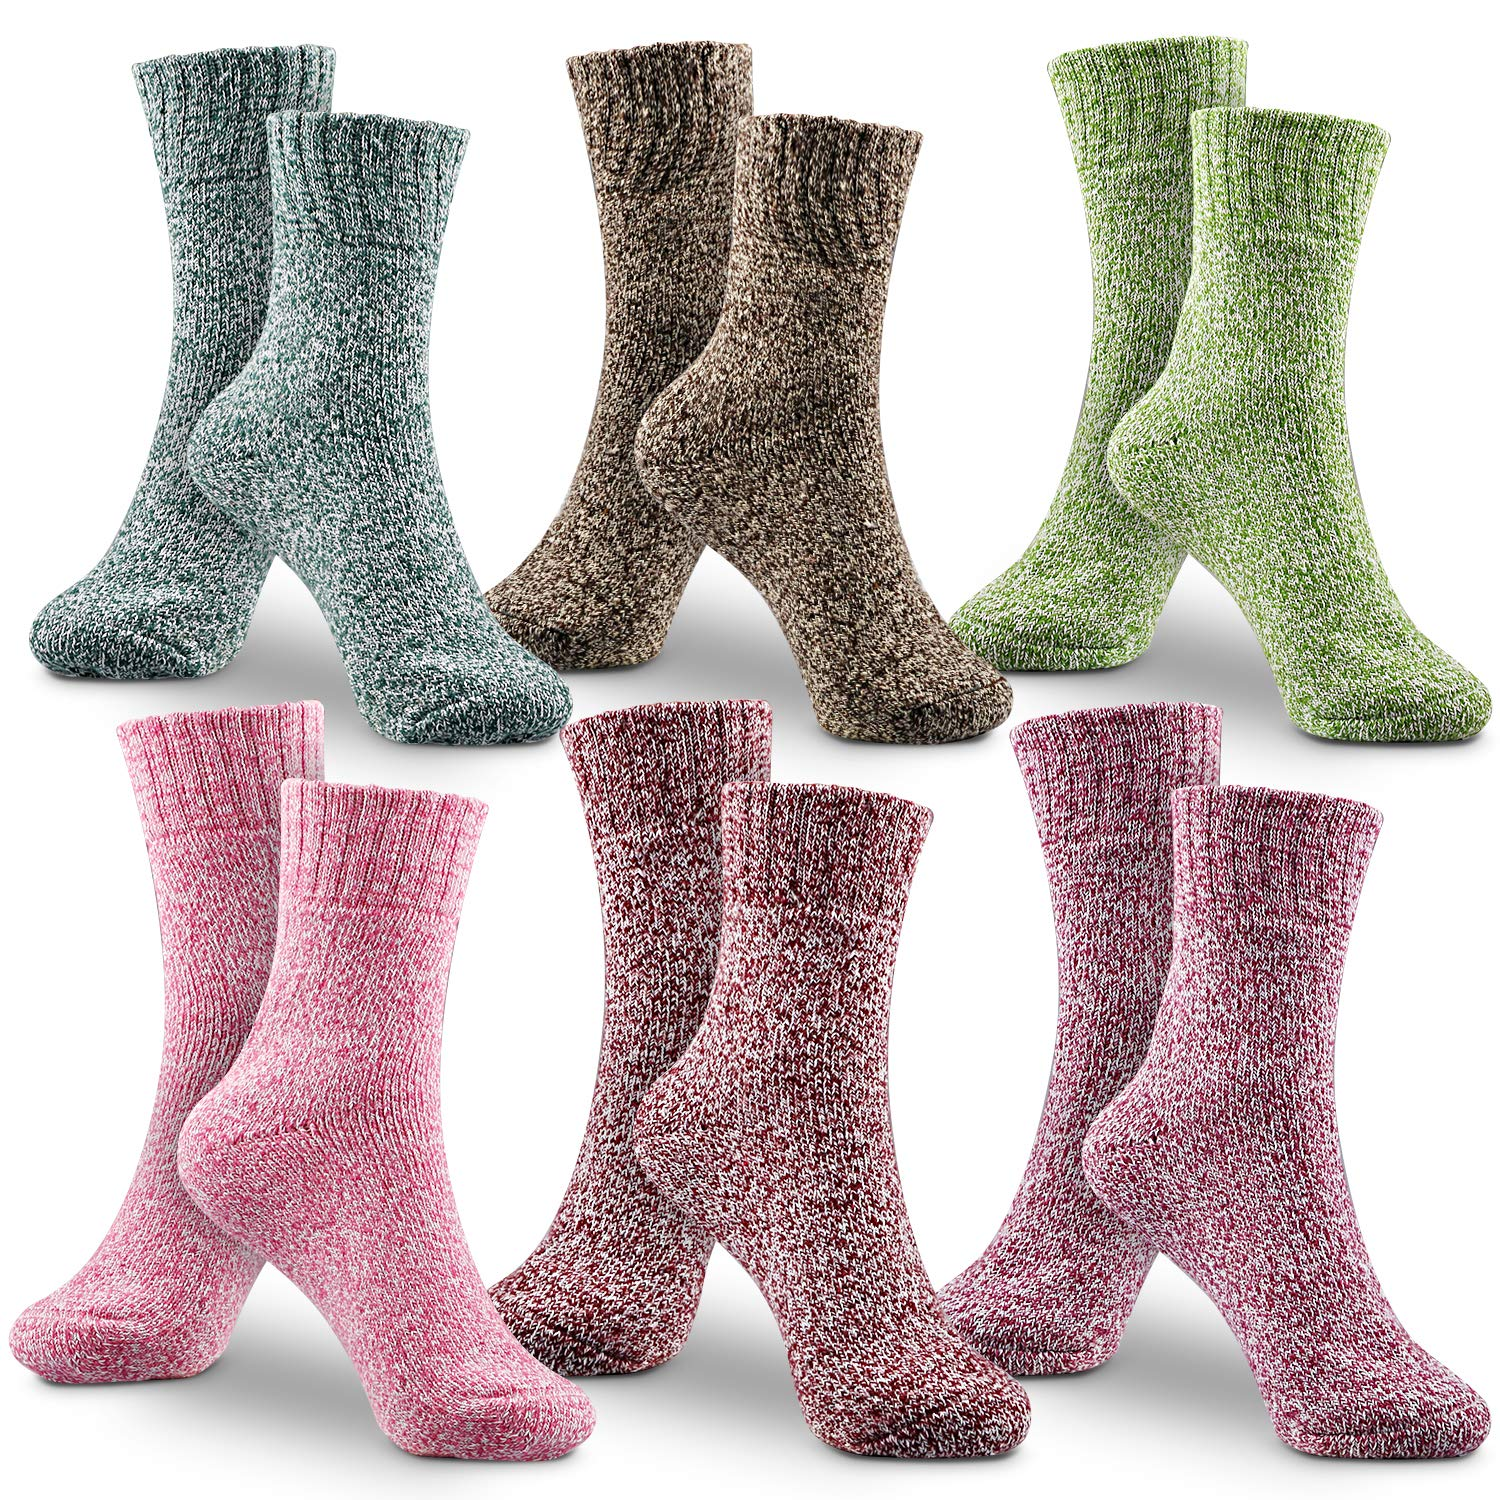 6 Pairs Womens Winter Socks Vintage Style Colorful Winter Warm Thick Knit Wool Cozy Crew Socks